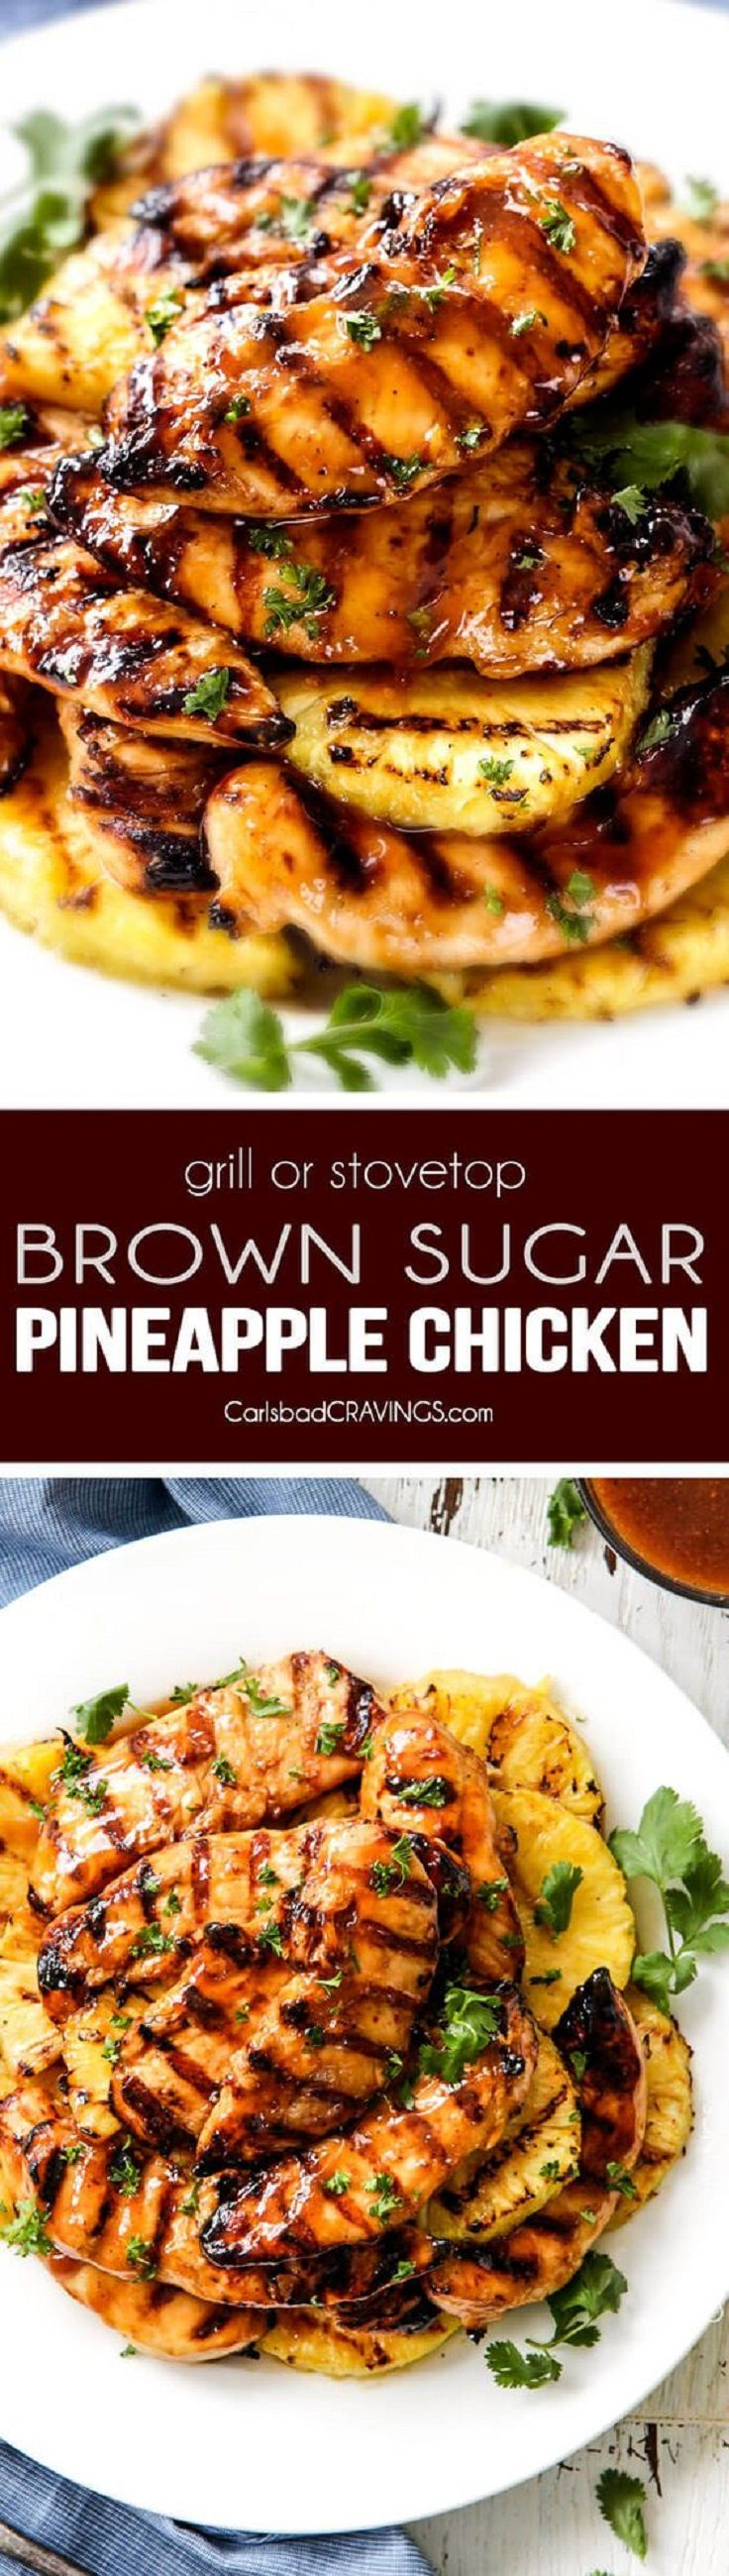 Brown Sugar Pineapple Chicken - 15 Prime Grilled Chicken Recipes That Will Excite Your Palate